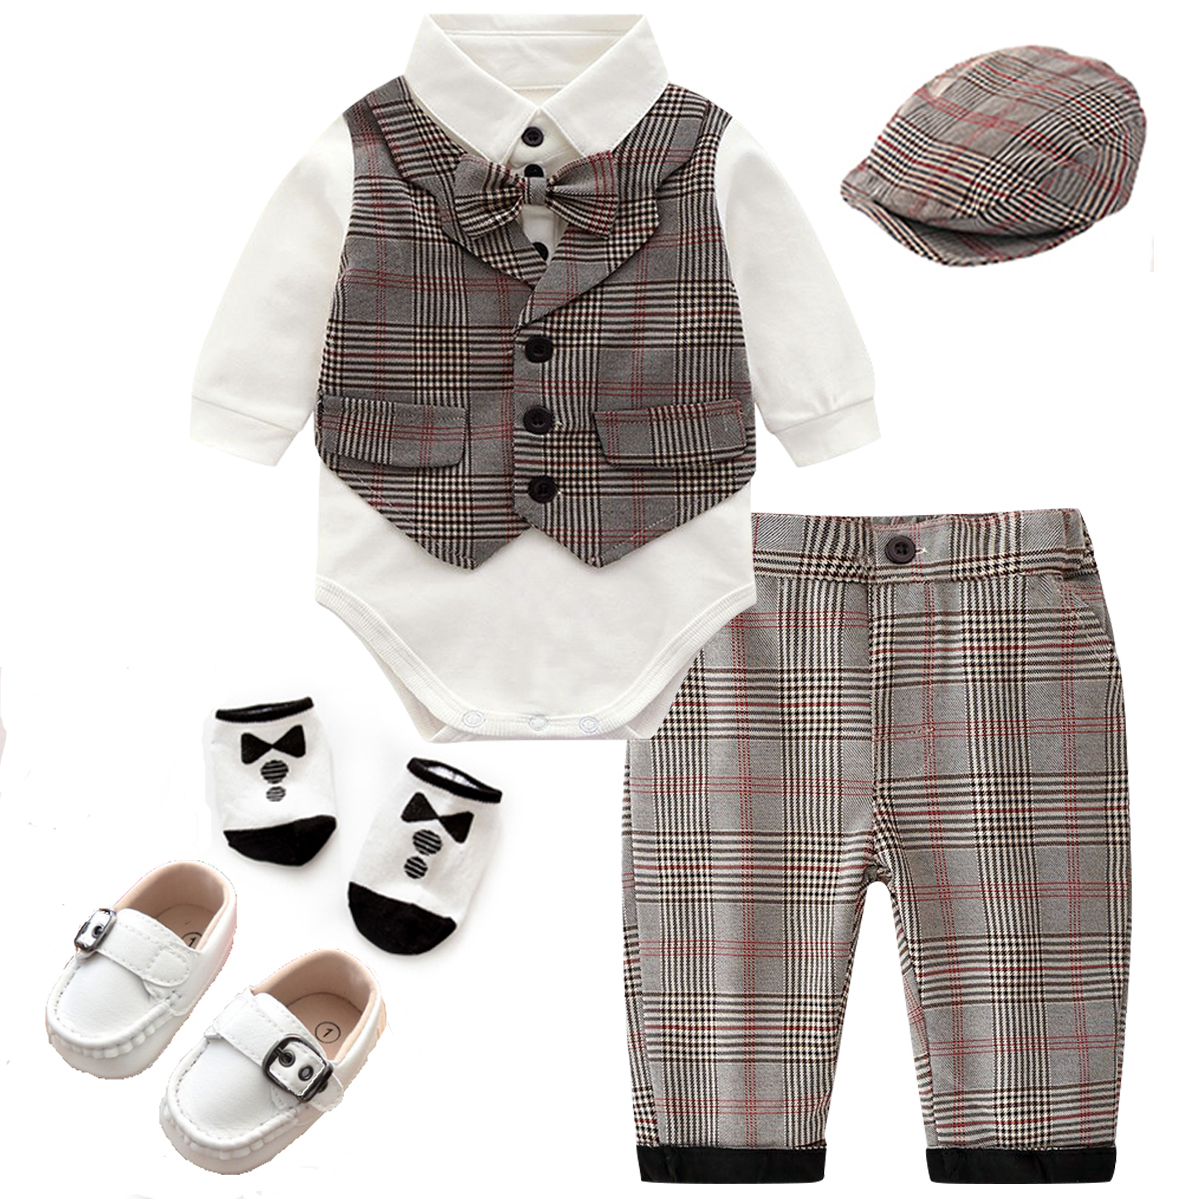 Baby Gentleman Outfit Infant Boys Formal Wedding Clothing Set  Toddler Birthday Party Gift Plaid Suit Shirt Pants Costume 5pcs